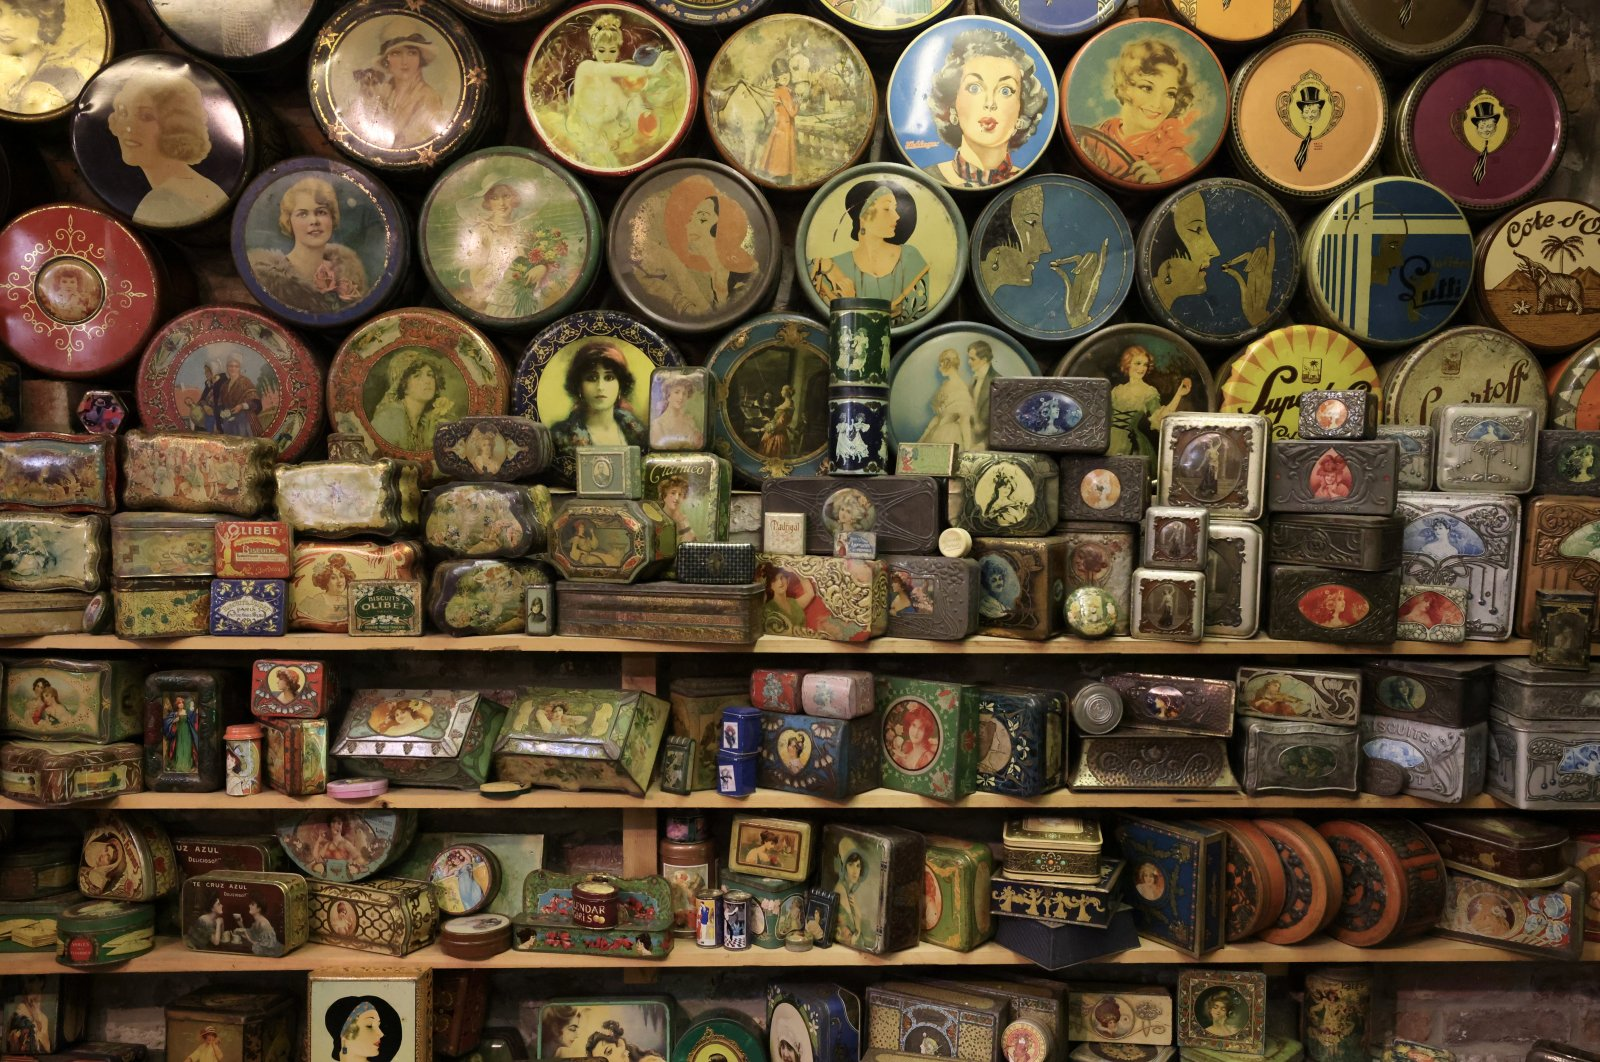 Vintage lithographed tin boxes, part of a huge collection of almost 60,000 pieces started 30 years ago by Yvette Dardenne, are seen at her house in Grand-Hallet, Belgium, Aug. 5, 2021. (Reuters Photo)